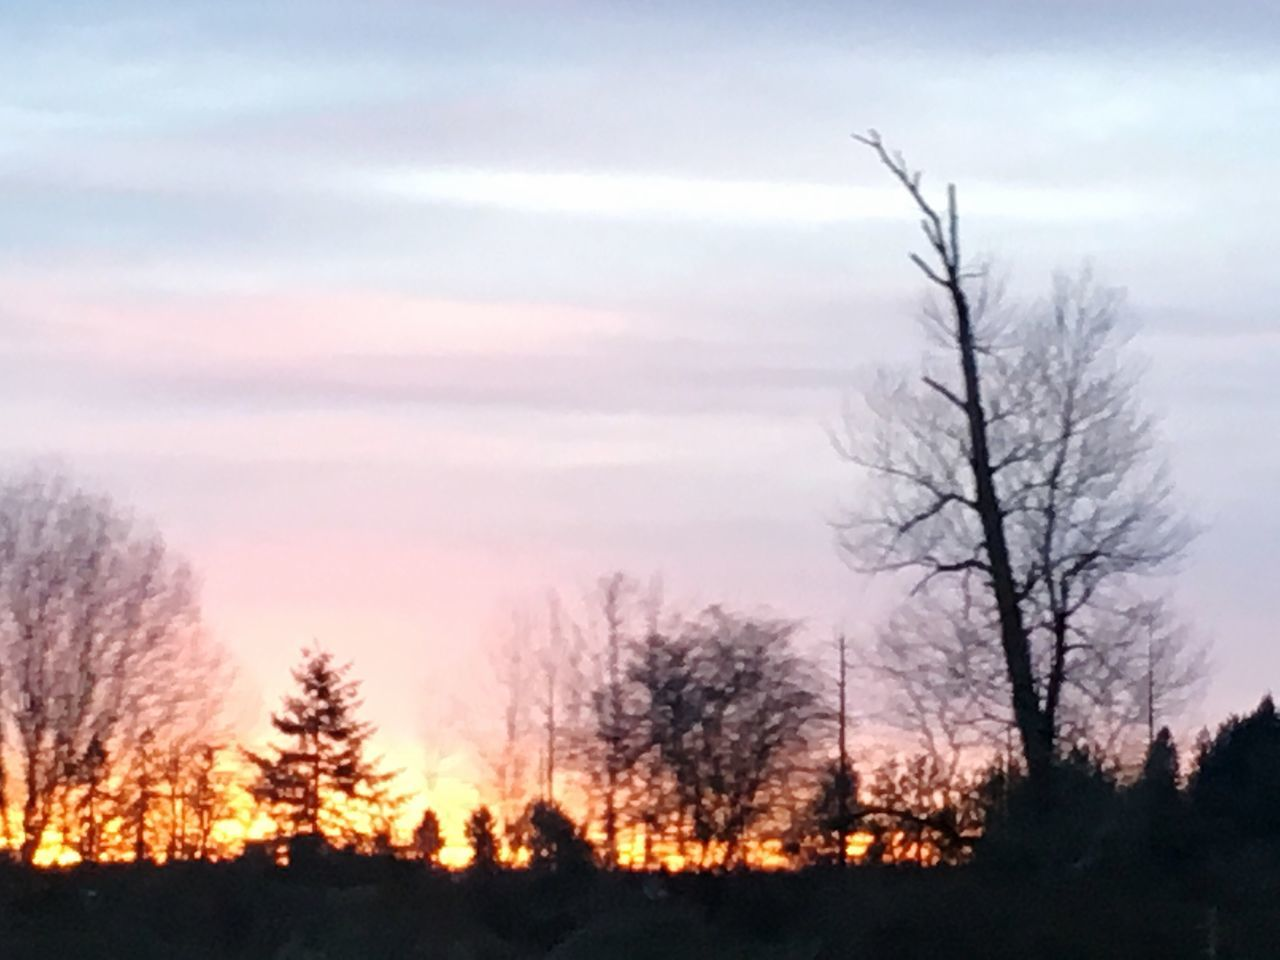 Finding New Frontiers Tree Silhouette Sky Nature Bare Tree Sunset No People Outdoors Landscape Beauty In Nature Day Enumclaw